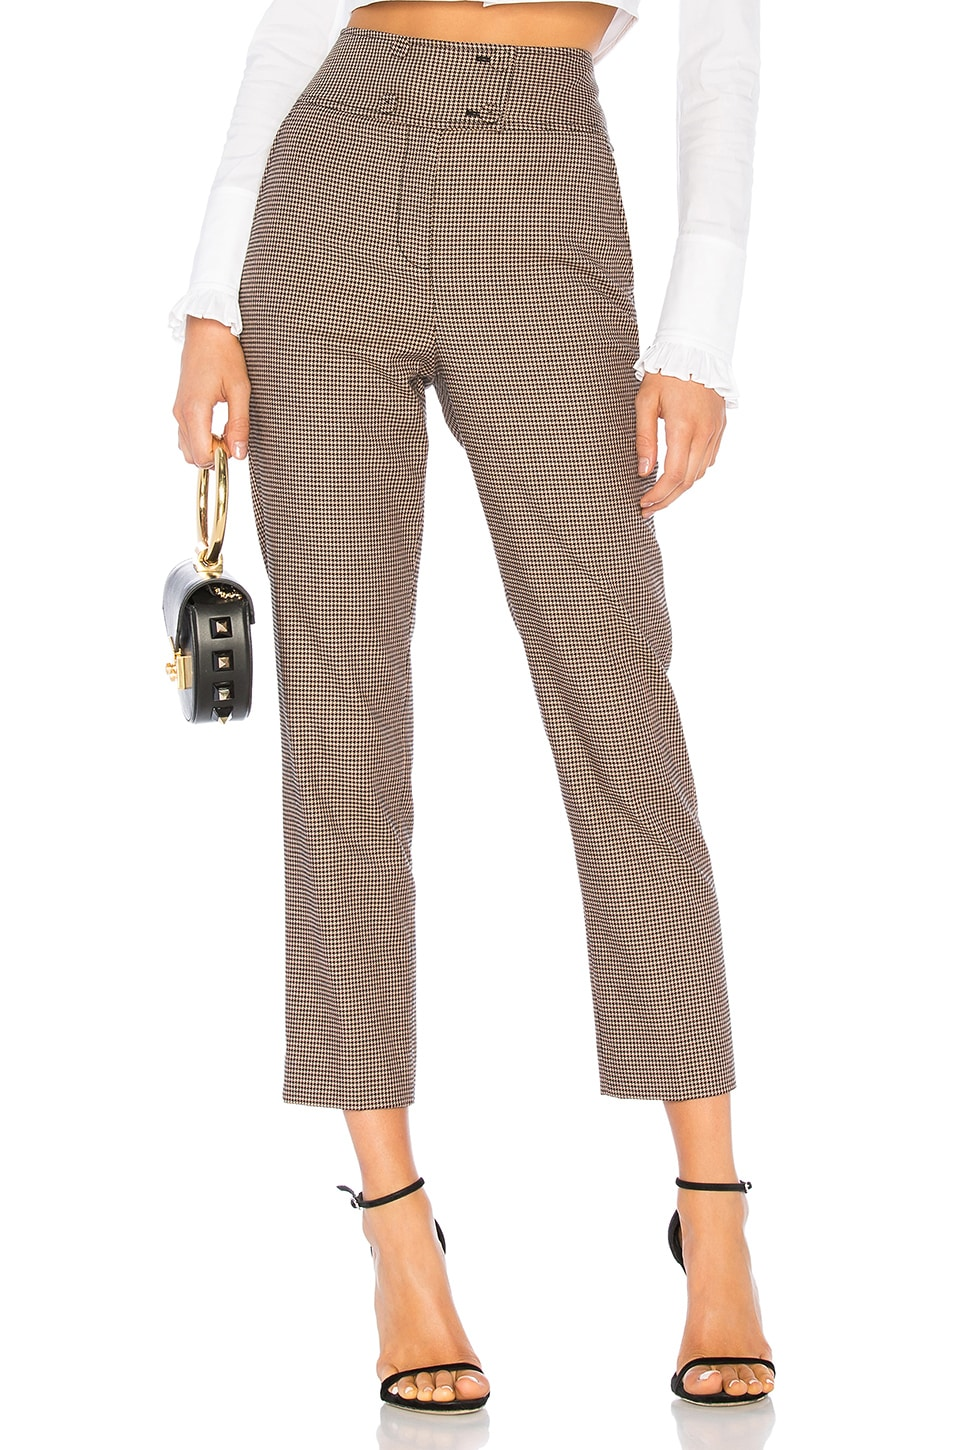 Rebecca Taylor Houndstooth Pant in Camel & Black